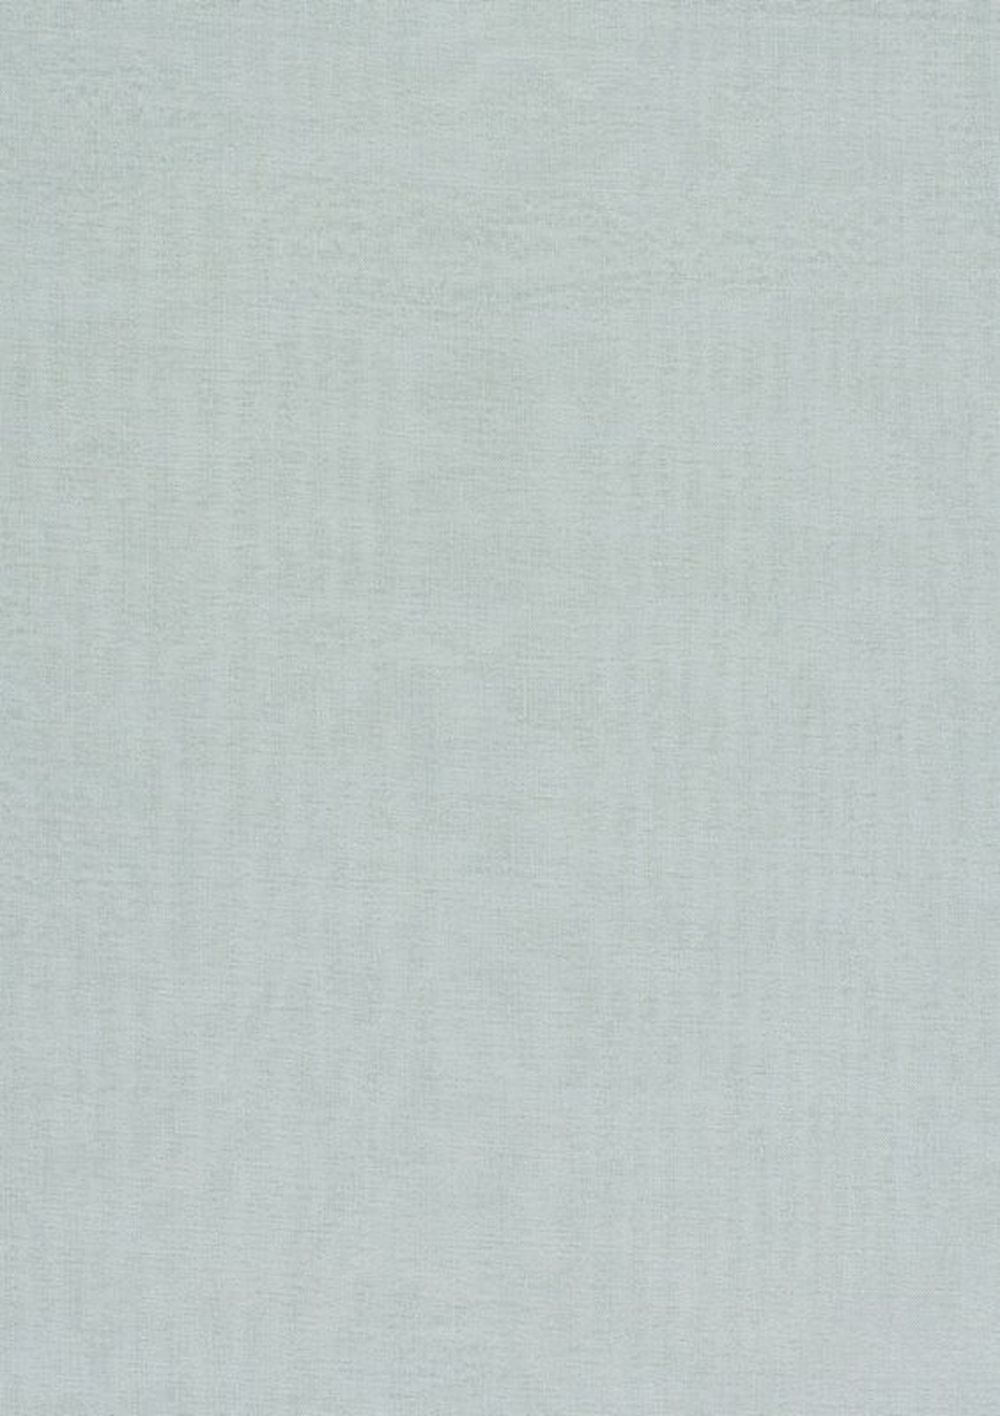 Photo of the fabric Calais FR-One Aqua swatch by FR-One. Use for Sheer Curtains. Style of Plain, Sheer